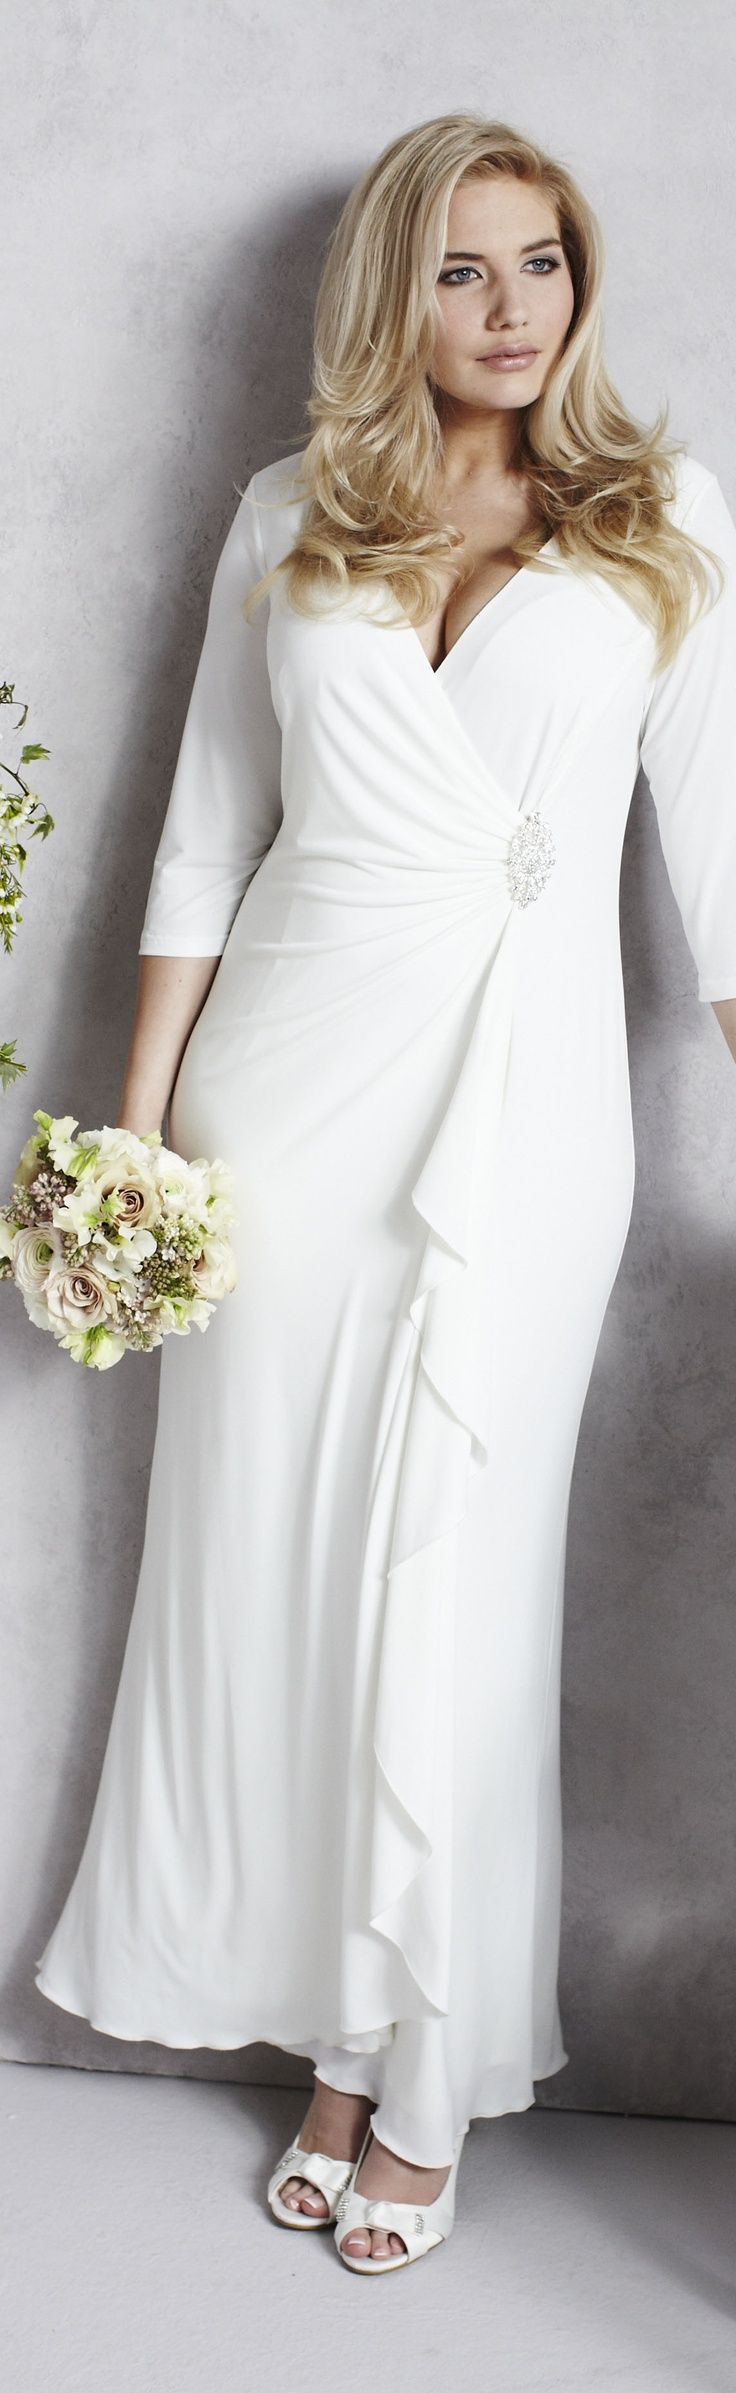 Long sleeve casual wedding dress   best Wedding Gaby images on Pinterest  Wedding frocks Bridal